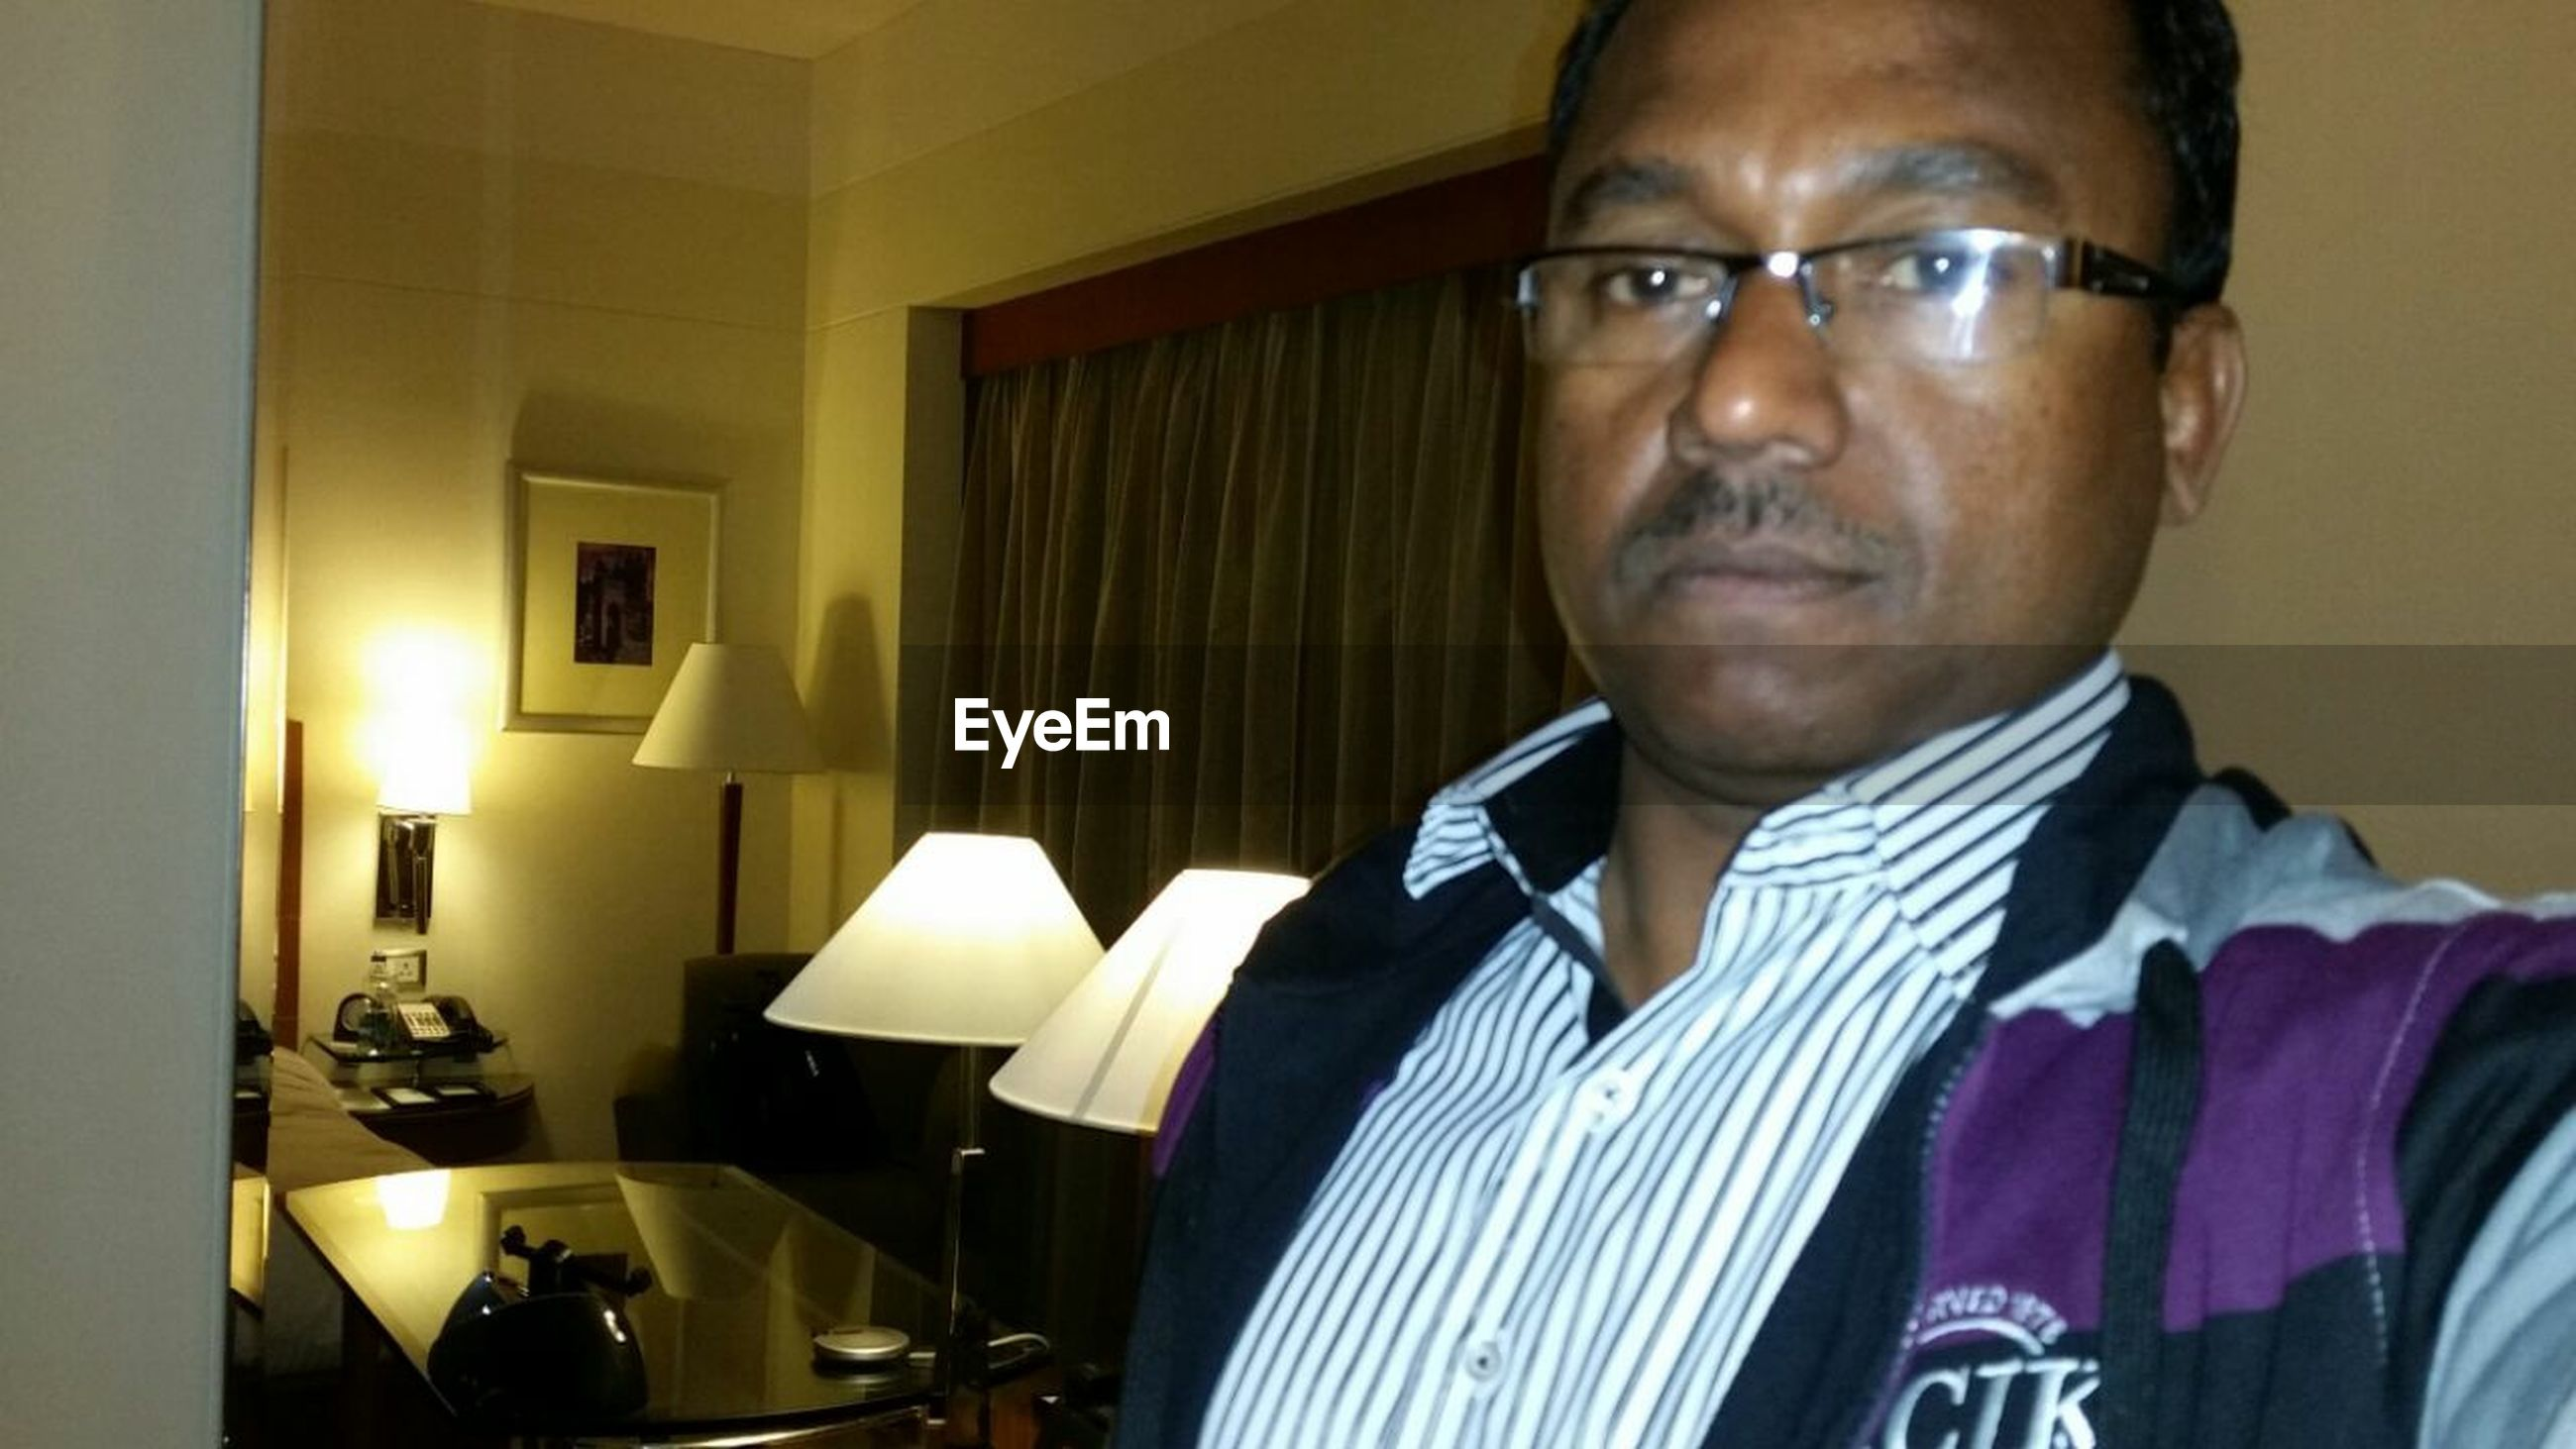 indoors, home interior, person, table, young adult, front view, sitting, chair, lifestyles, looking at camera, casual clothing, domestic room, restaurant, domestic life, leisure activity, young men, portrait, eyeglasses